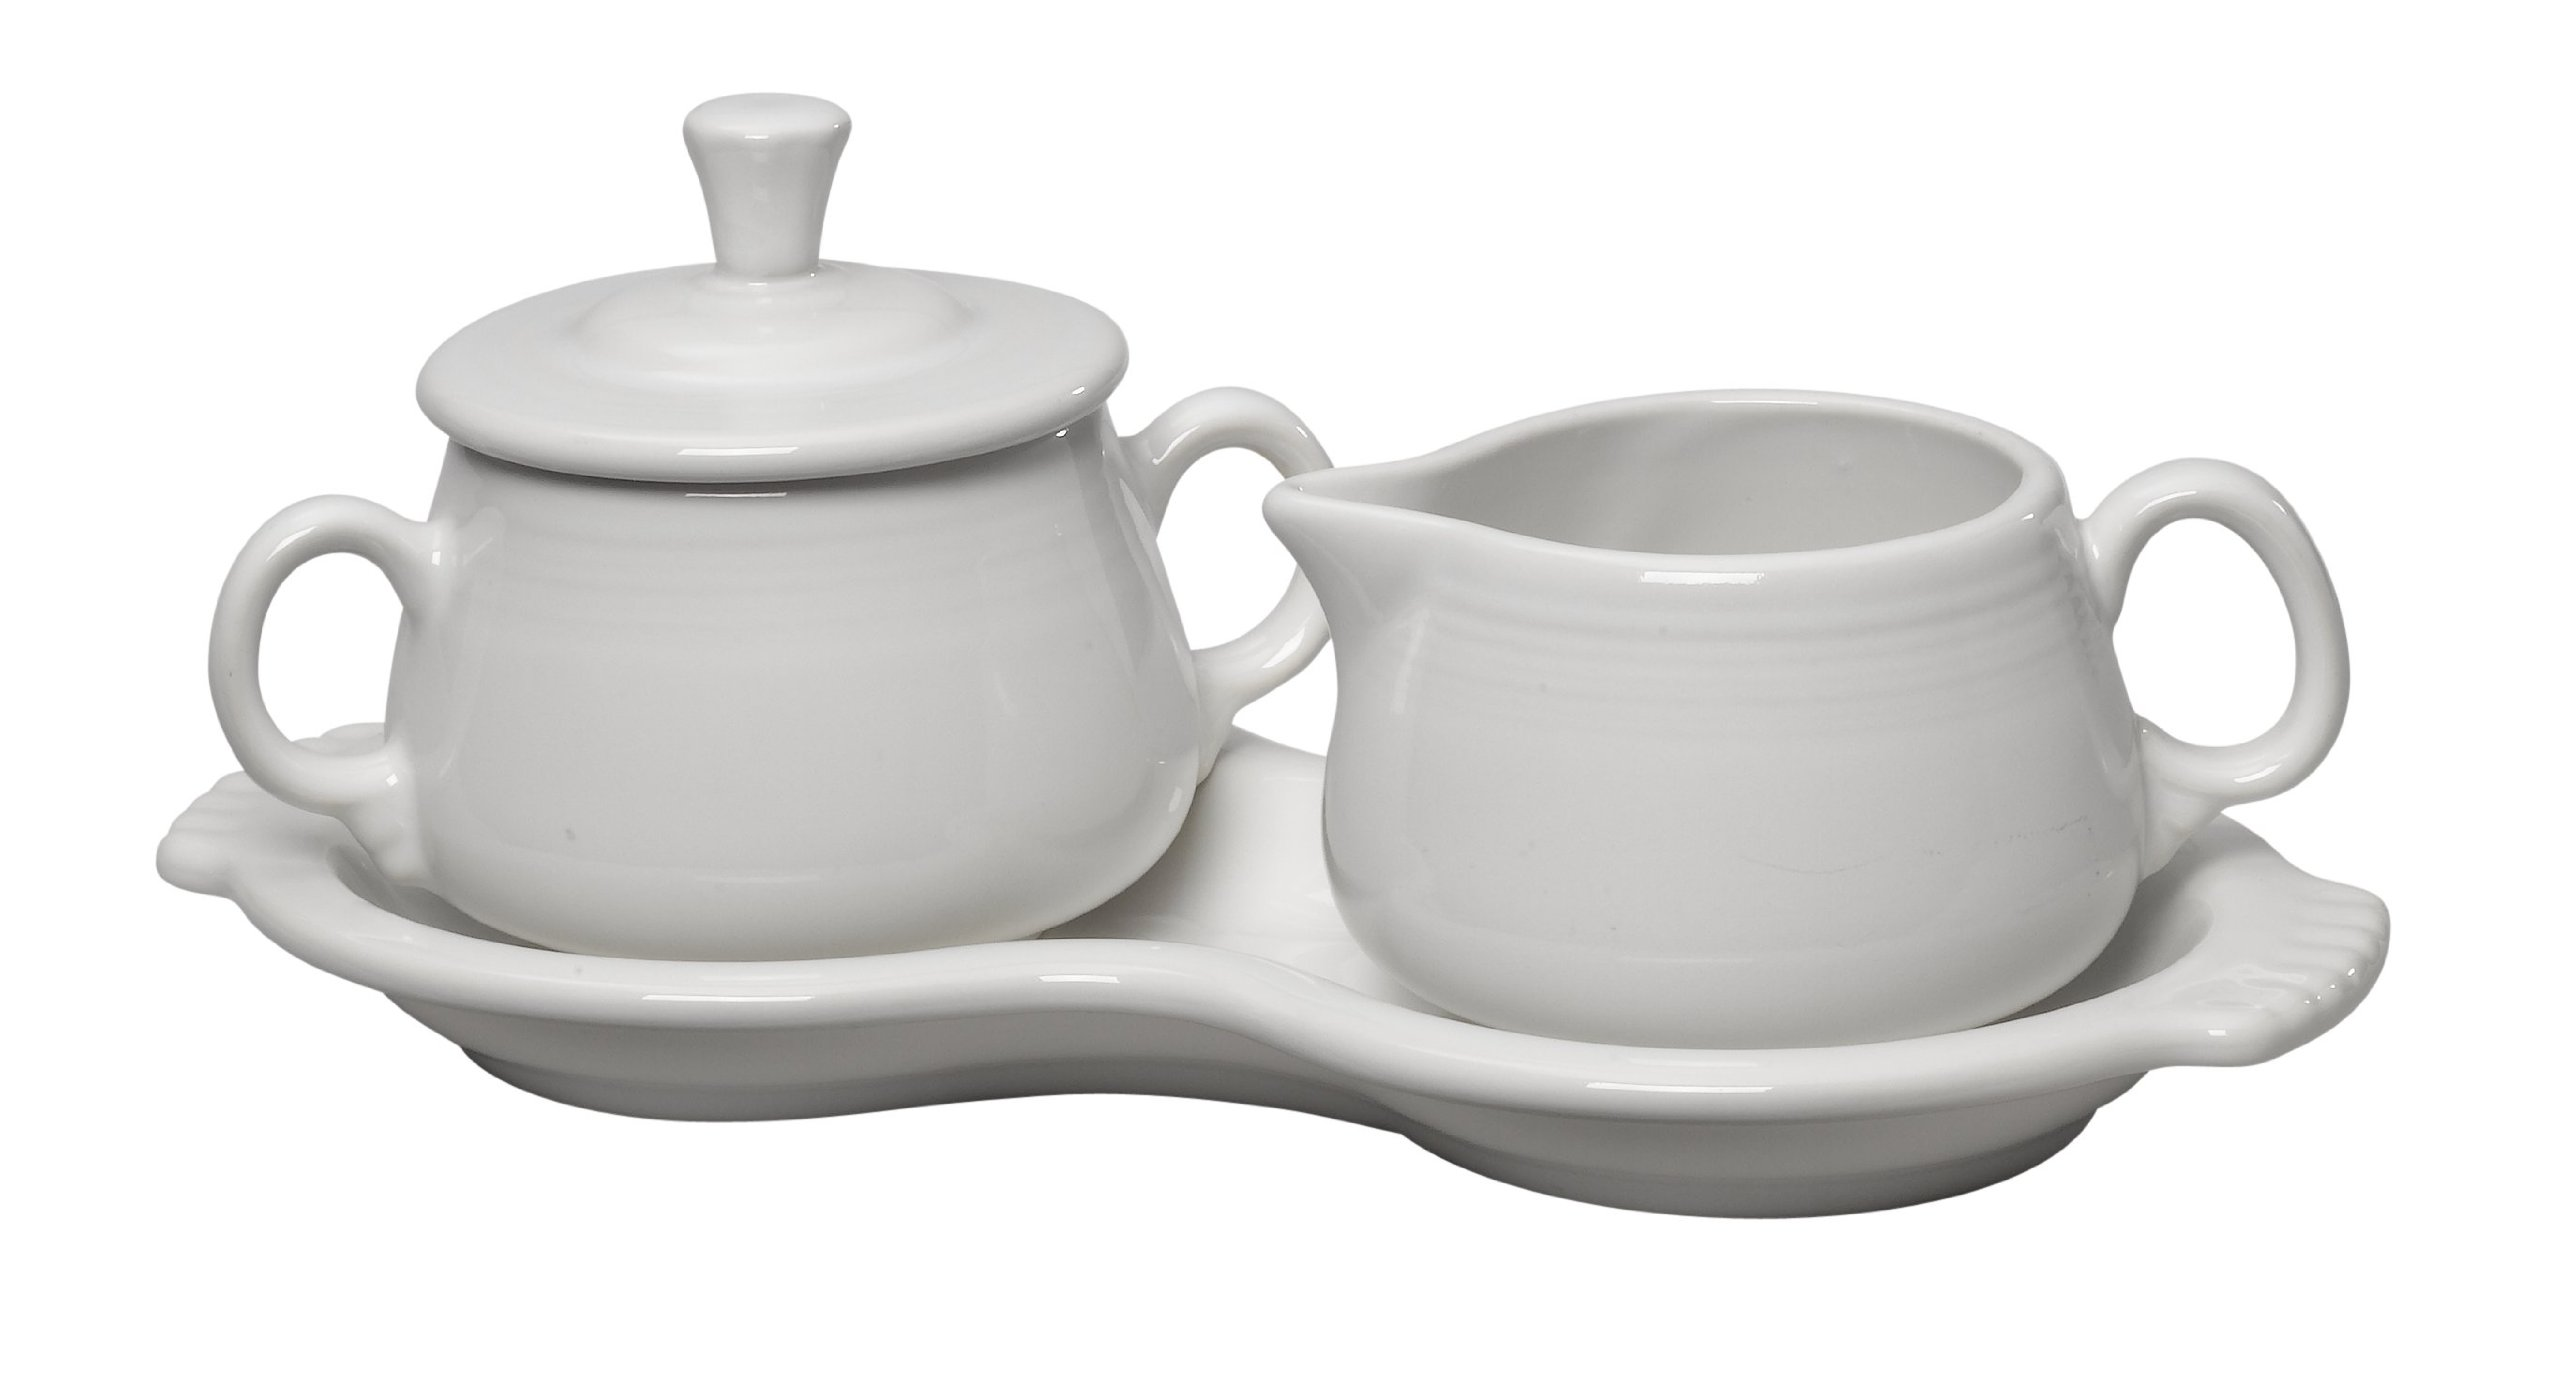 Fiesta Covered Creamer and Sugar Set with Tray, White